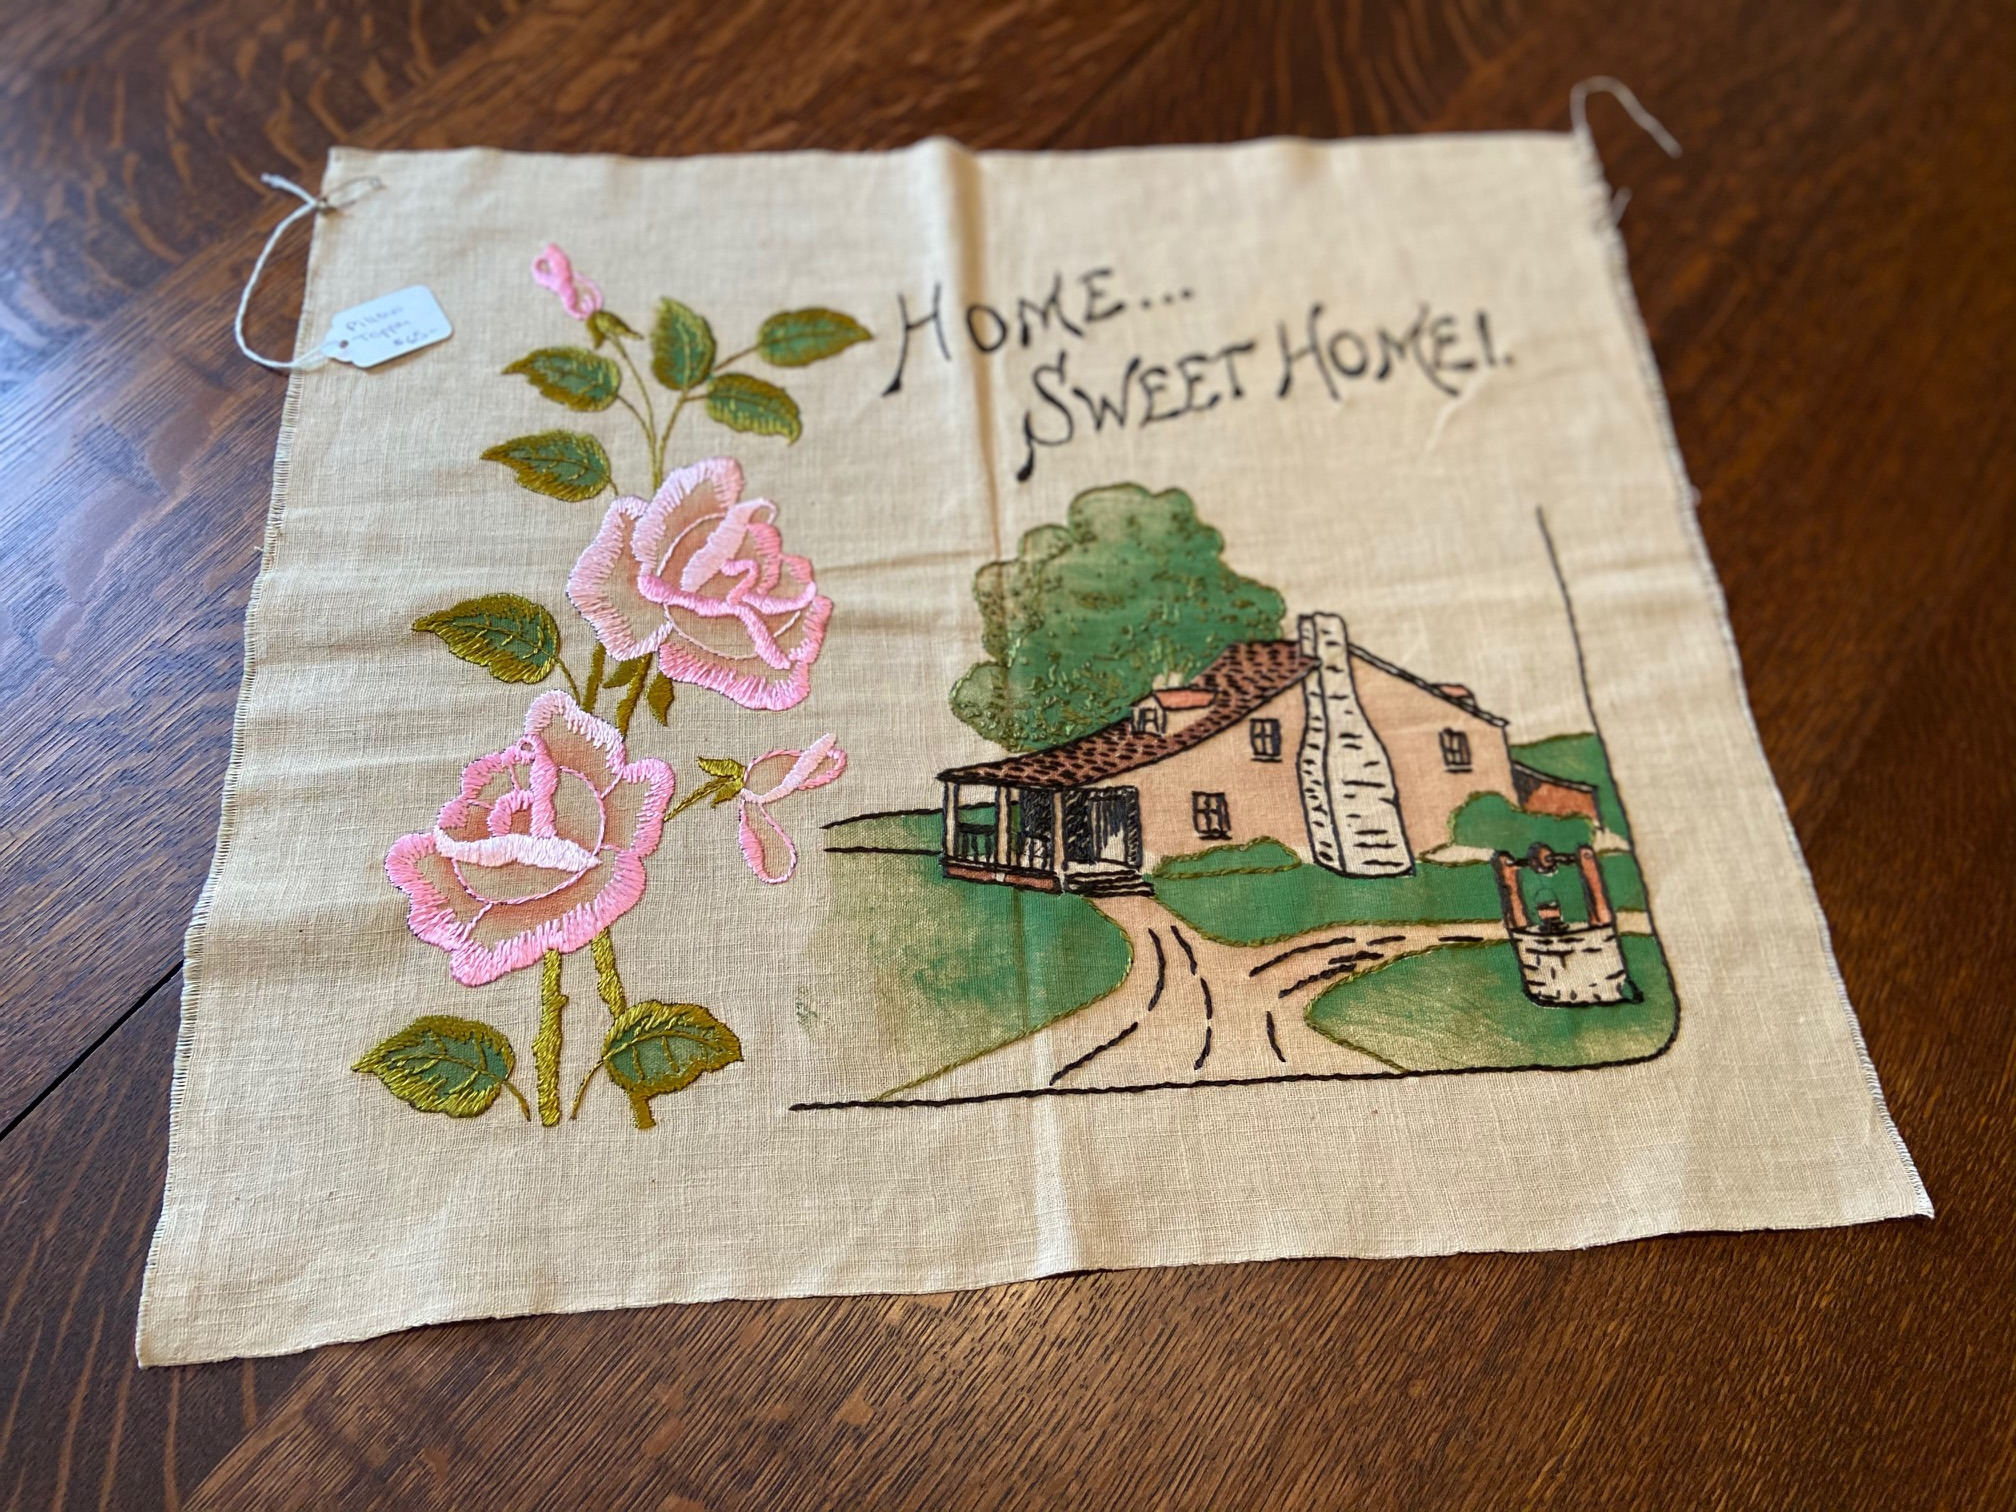 Home Sweet Home Textile